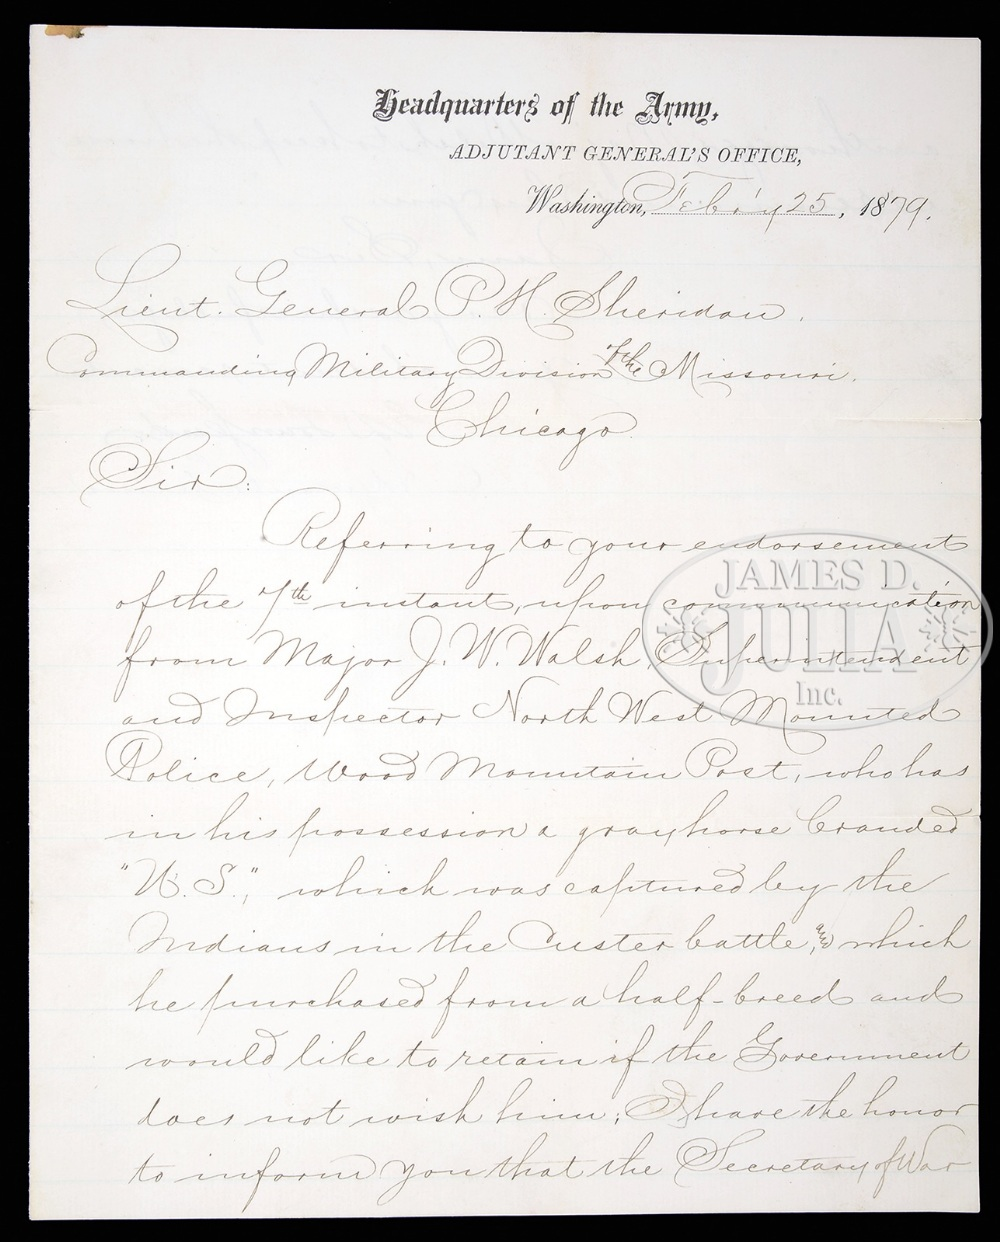 GENERAL ALFRED H. TERRY SIGNED DOCUMENT SURRENDERING A HORSE THAT SURVIVED THE BATTLE OF THE - Image 2 of 2